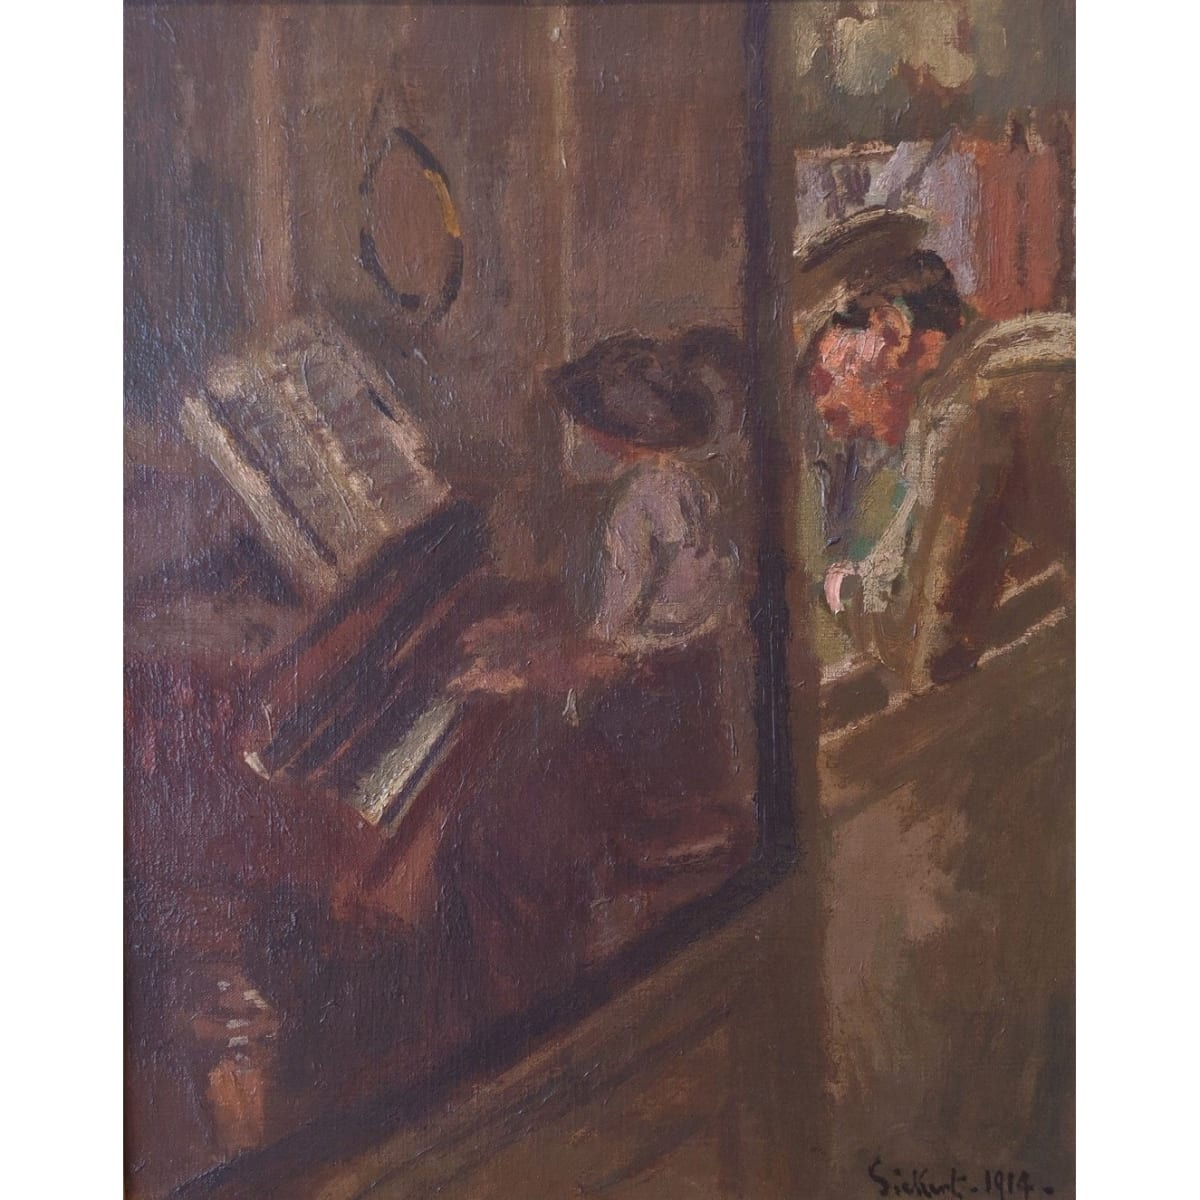 Walter Sickert Tipperary, 1914 signed and dated 'Sickert 1914' oil on canvas 20 x 16 inches